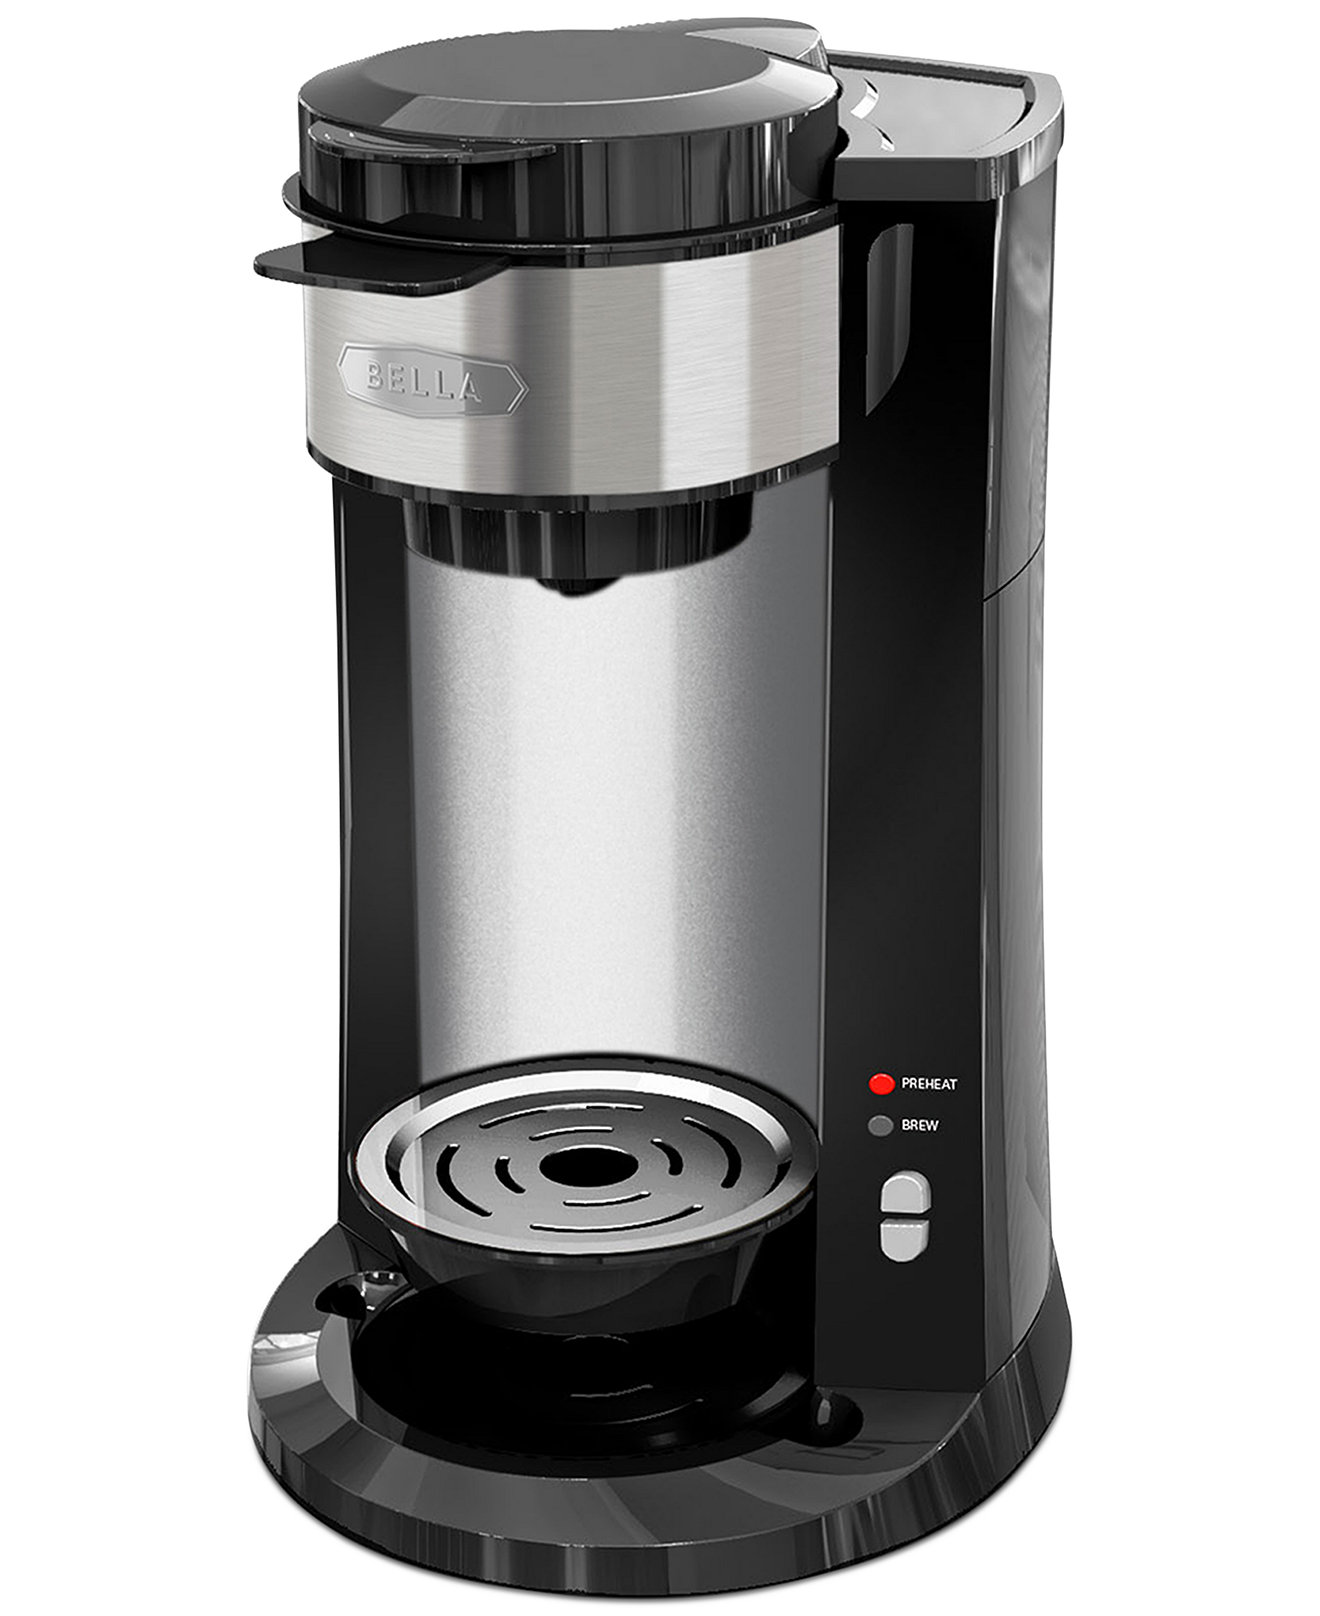 bella coffee maker 10 best coffee makers 100 for 2016 top 31402